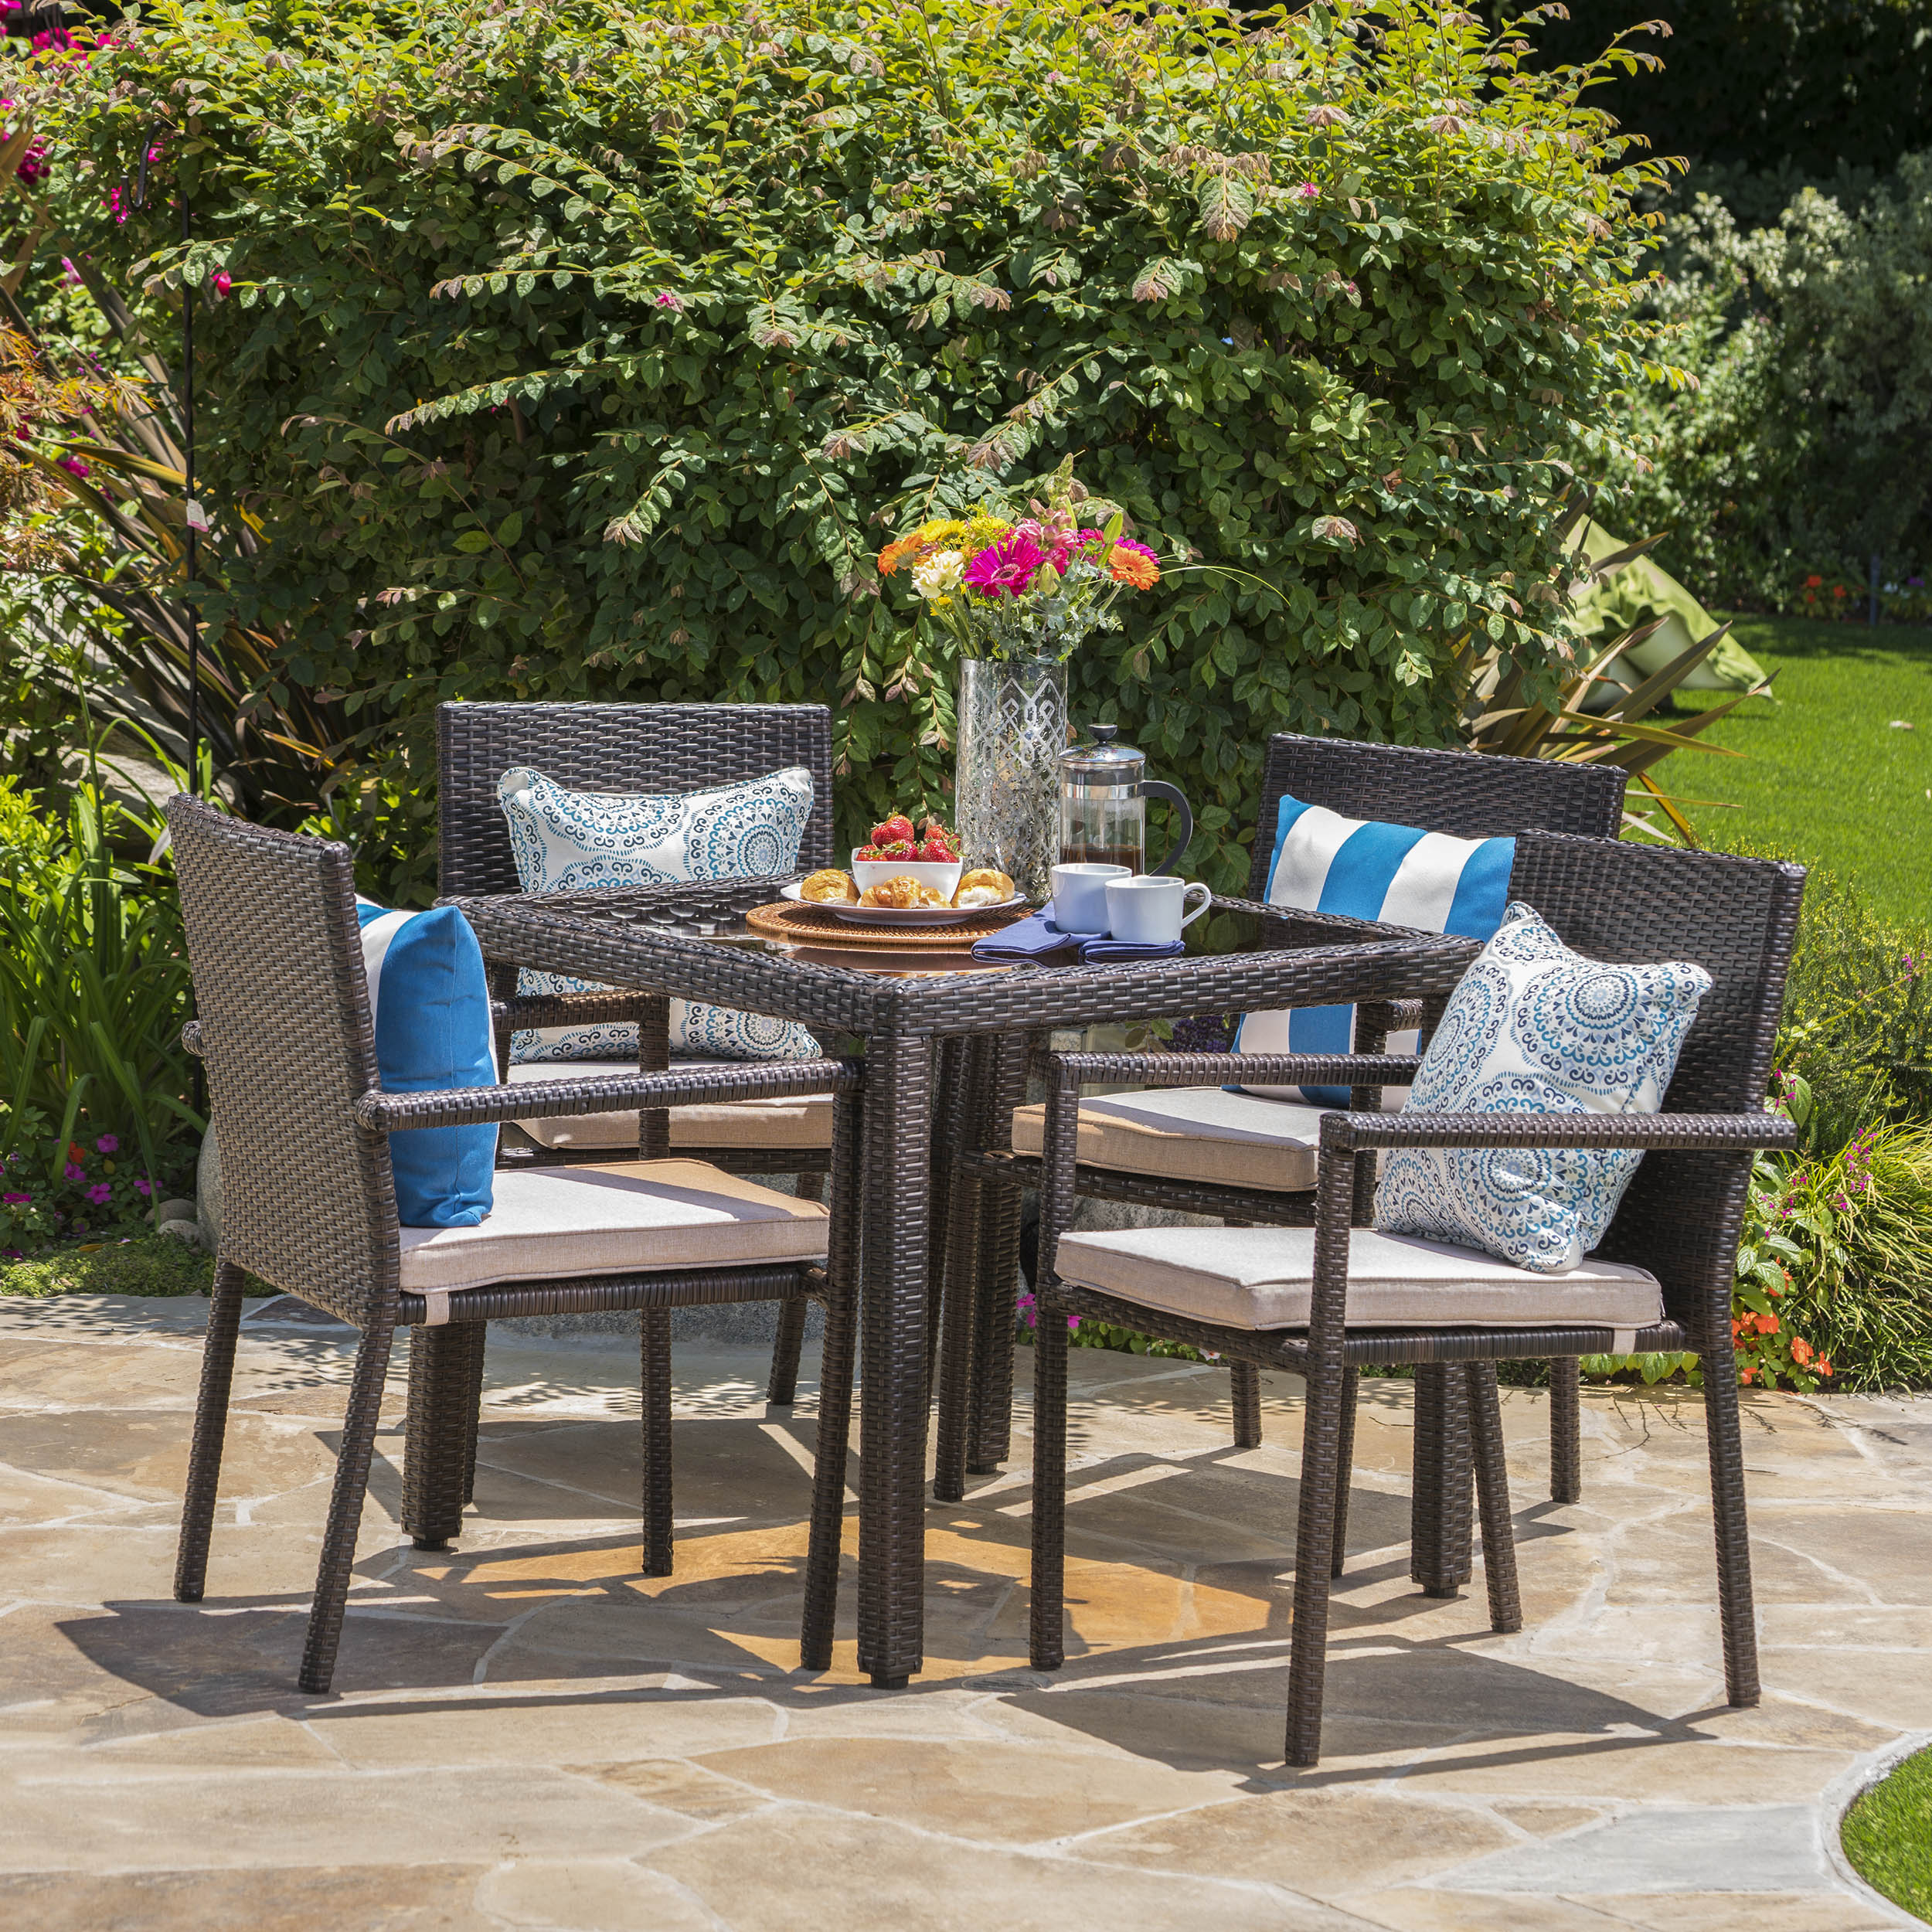 Porto Outdoor 5 Piece Square Wicker Dining Set with Cushions, Multibrown, Textured Beige